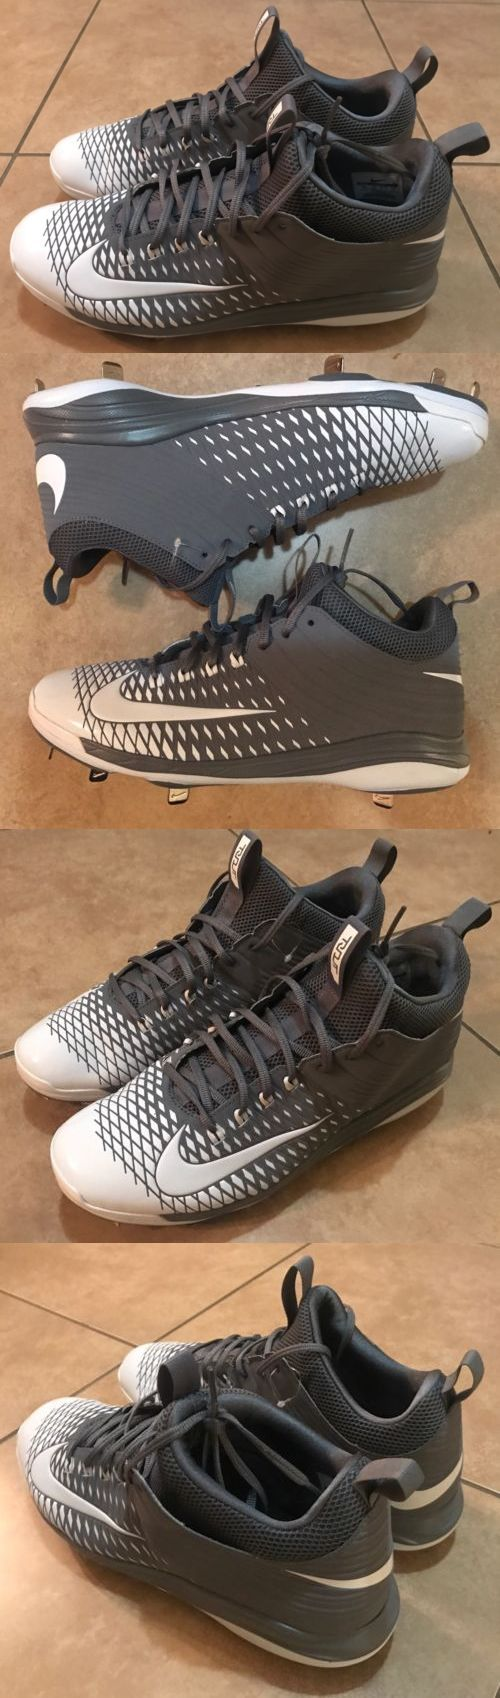 free shipping af04d ad8be ... sale mens 159059 nike trout 2 pro low baseball metal cleats white grey  807133 010 bb33f